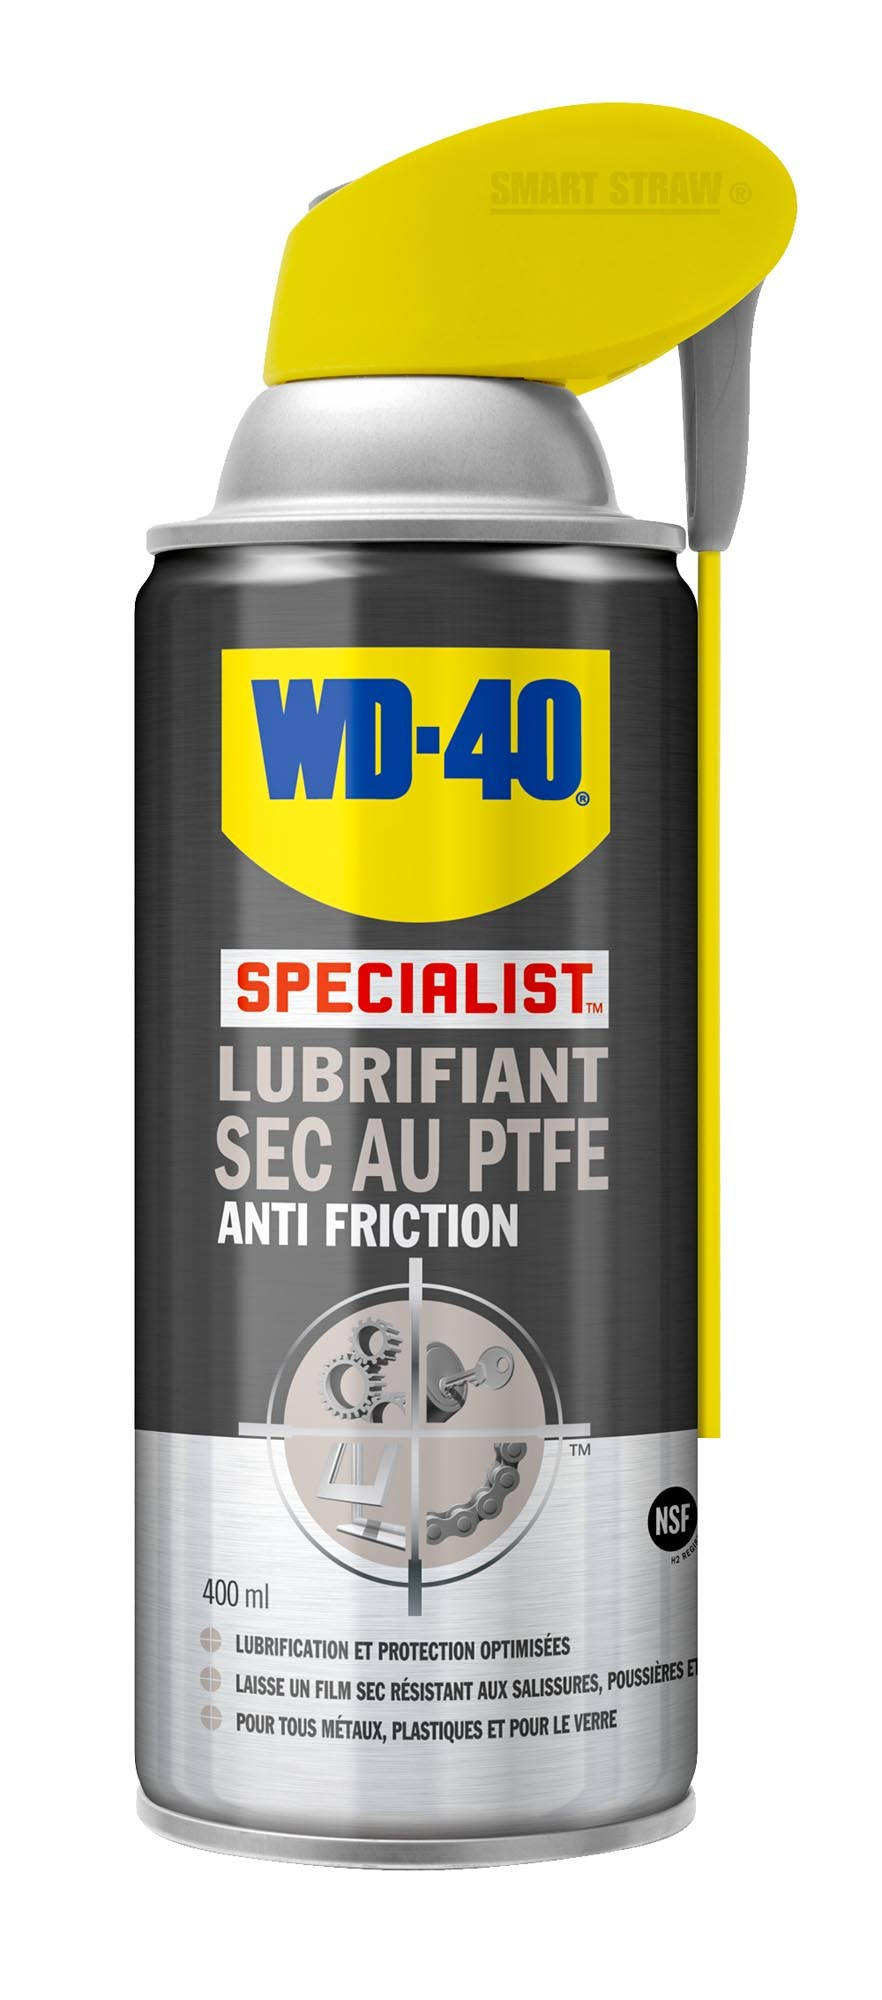 Spray lubrifiant sec wd-40 au ptfe, made in chasse - equi...